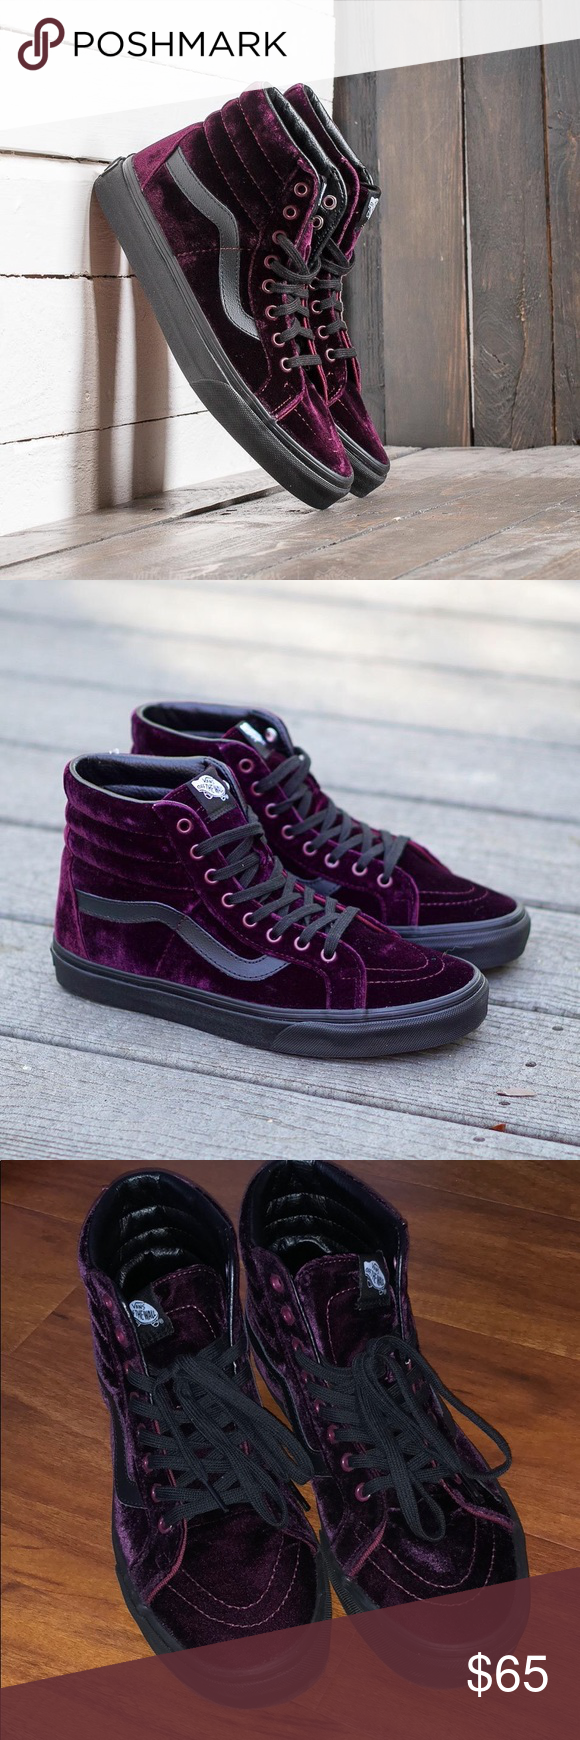 c9dc2f9b73 Vans sk8 hi Vans Luxurious but cool